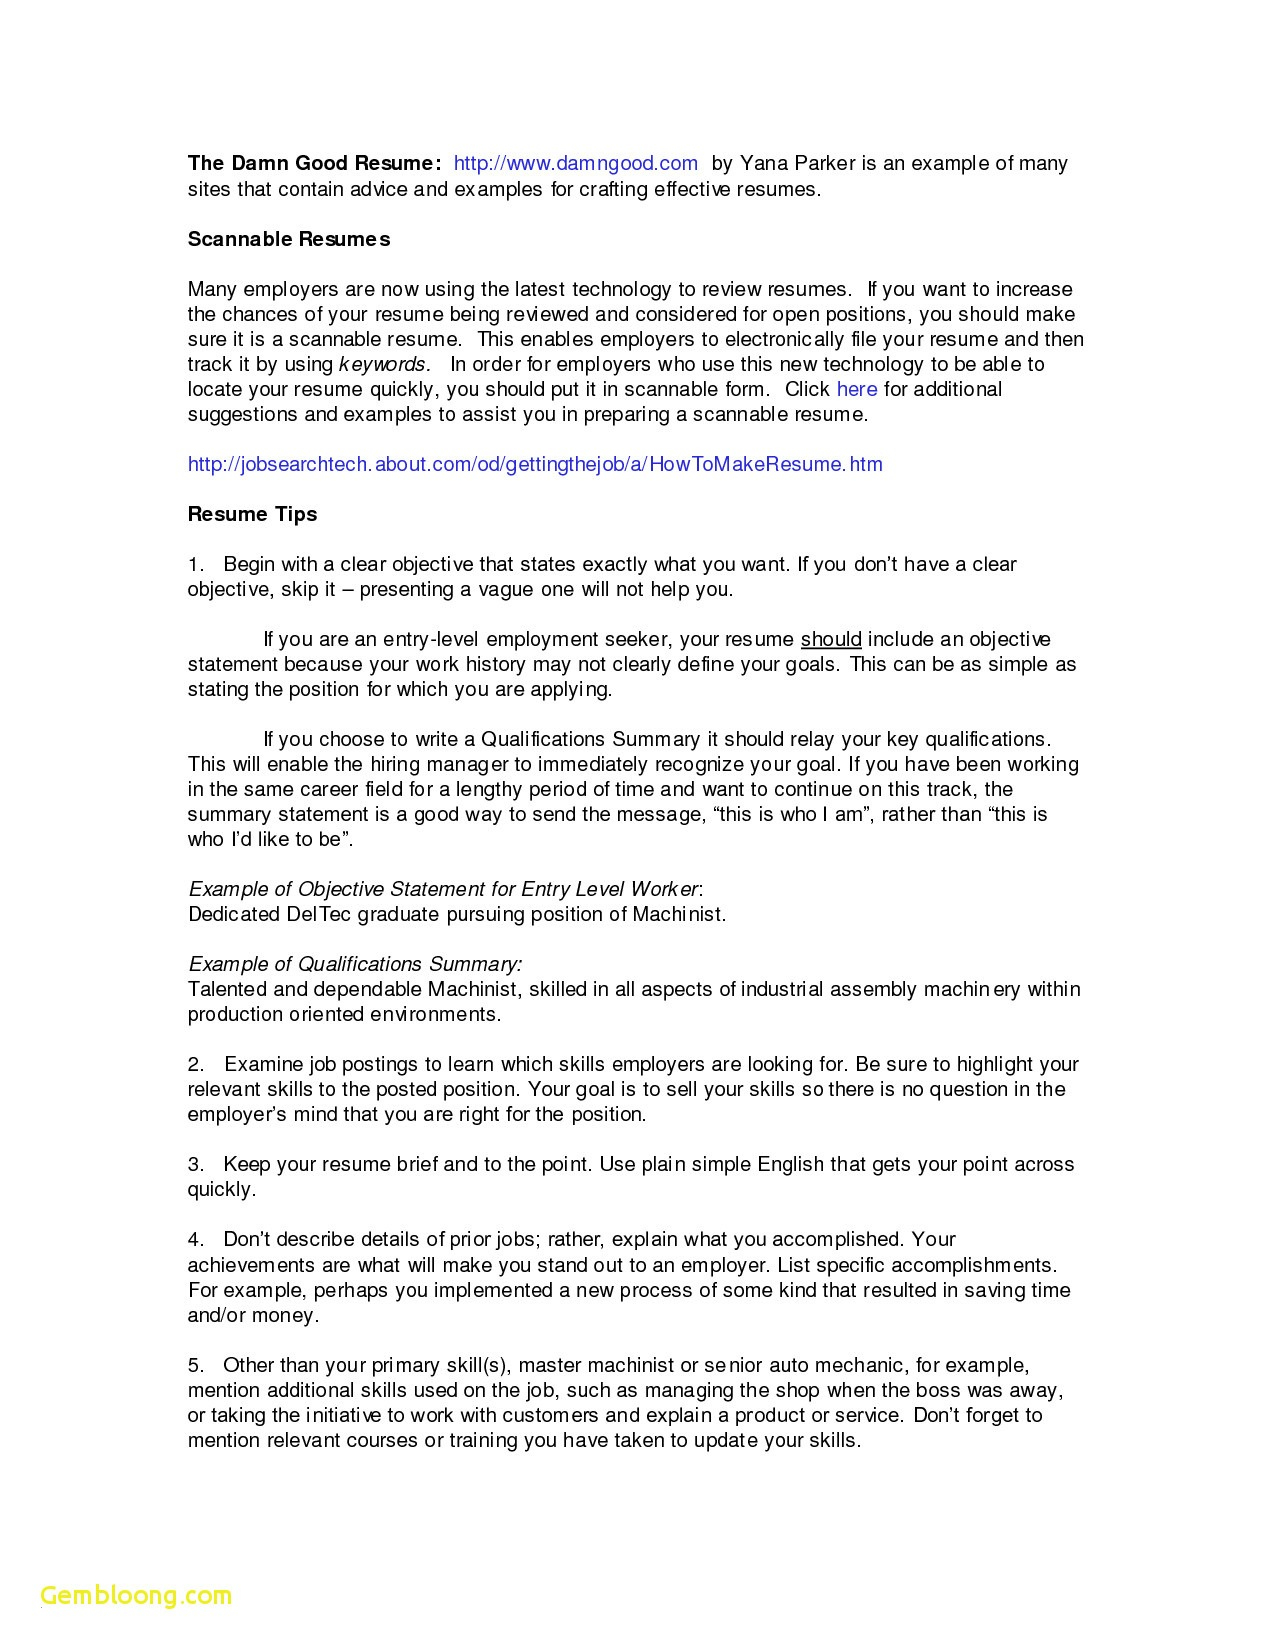 First Time Job Resume Examples - Part Time Jobs Resume Example Inspirational First Time Job Resume